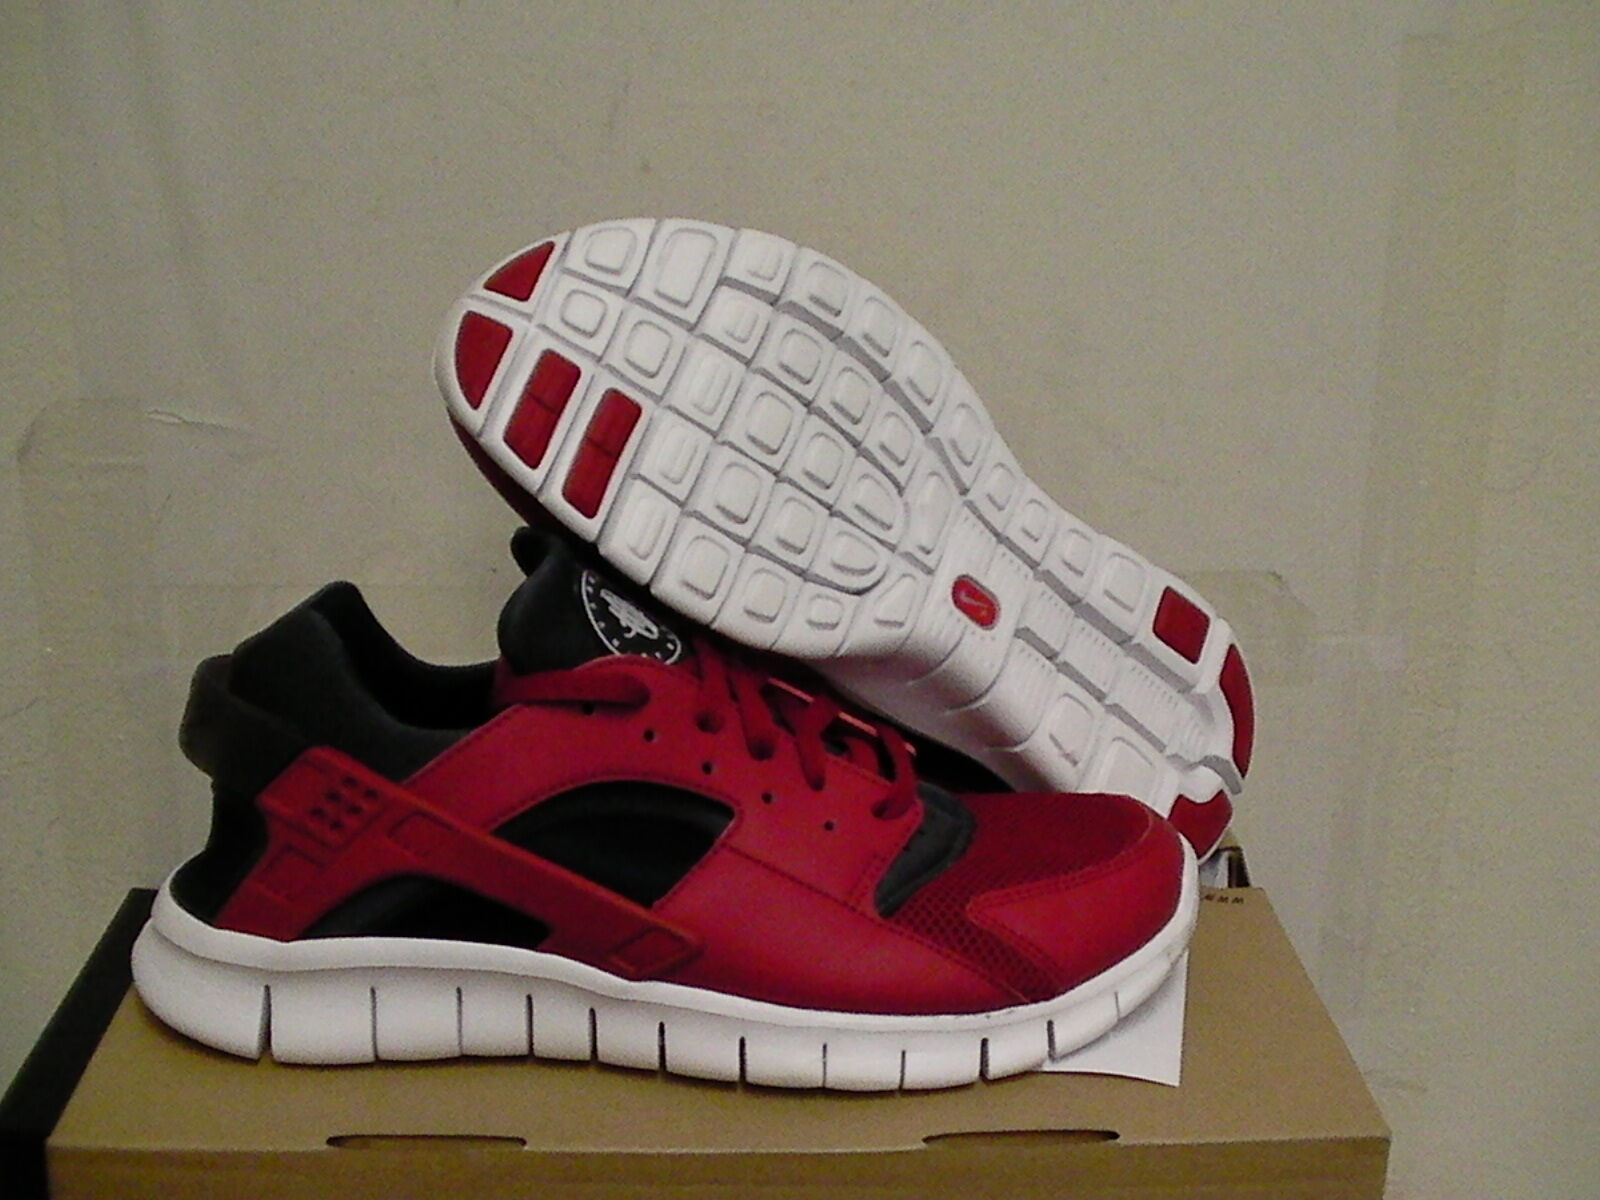 Nike huarache free run running shoes re & black size 8.5 us